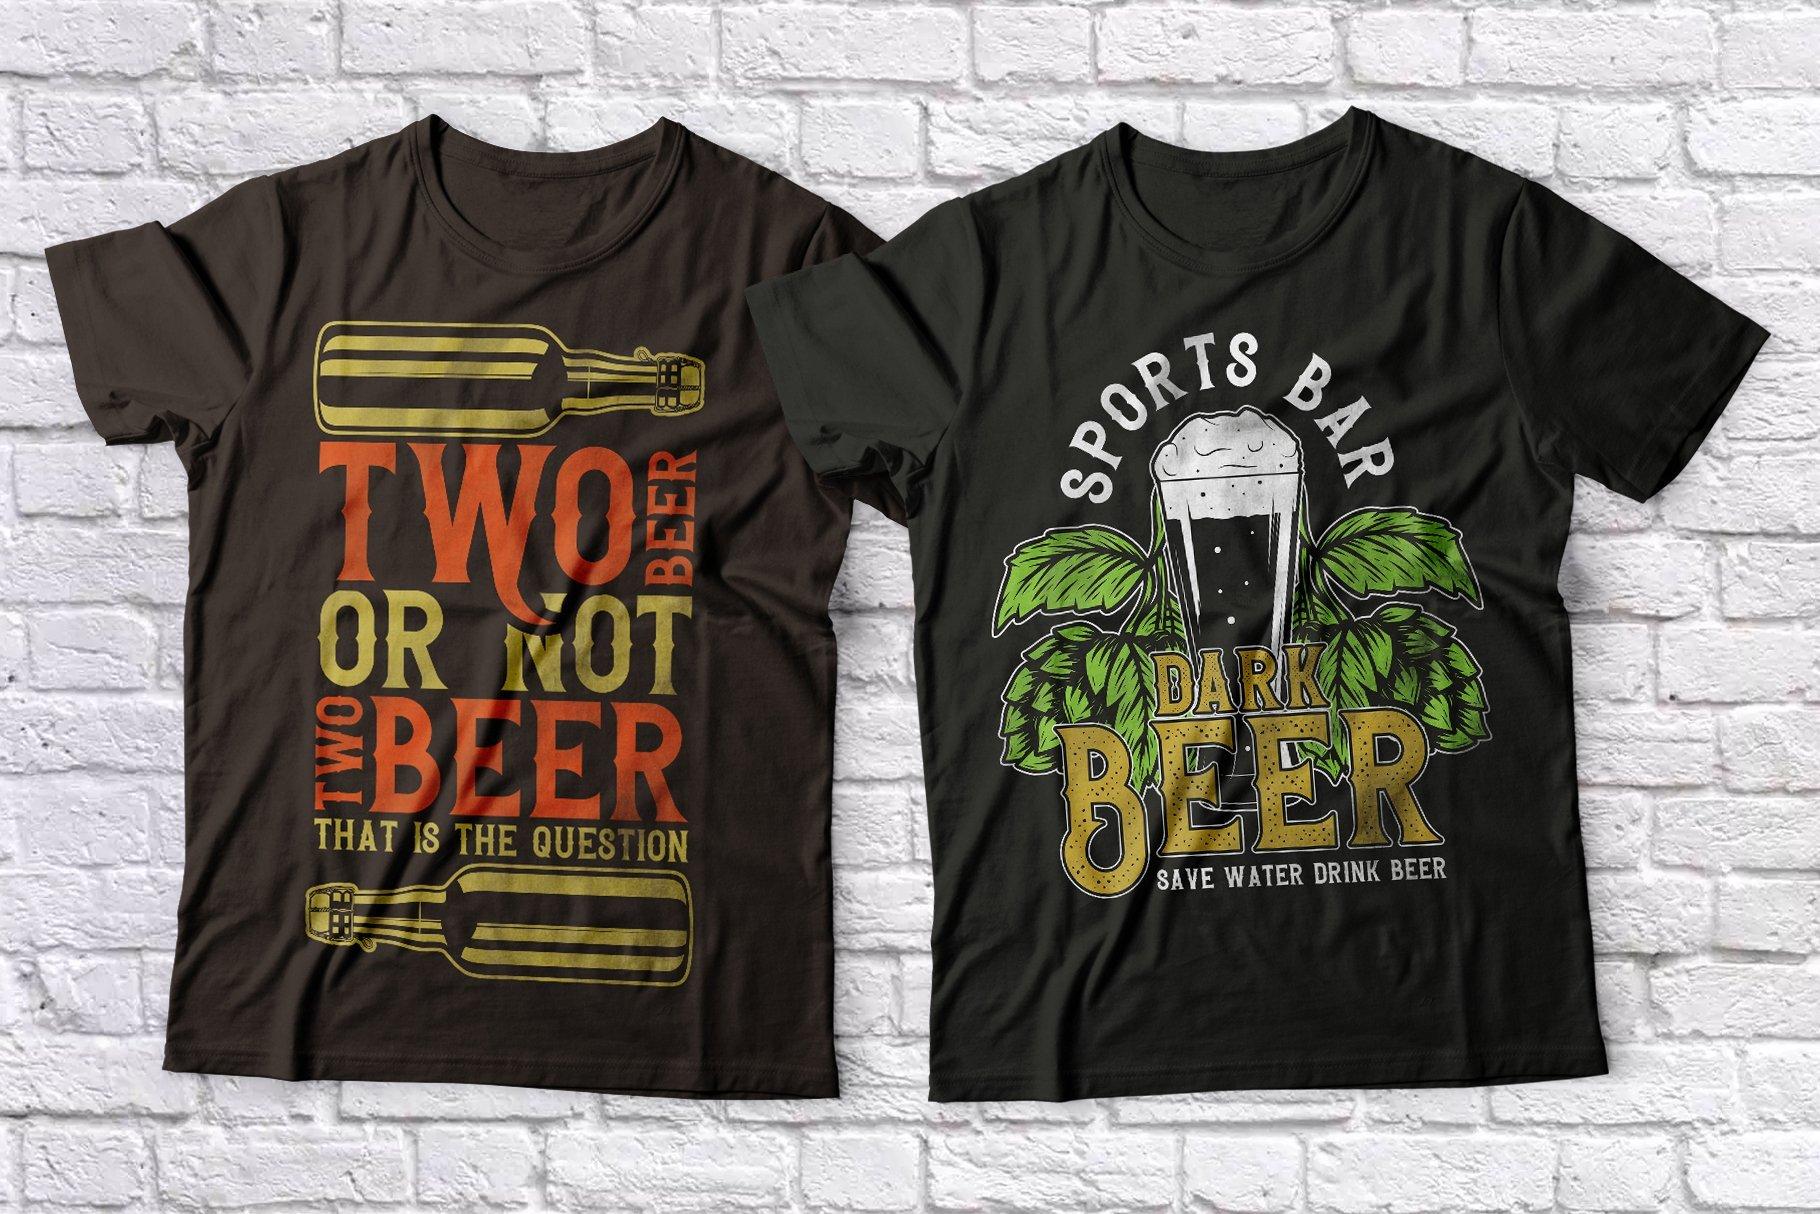 T-shirts with beer and lettering.